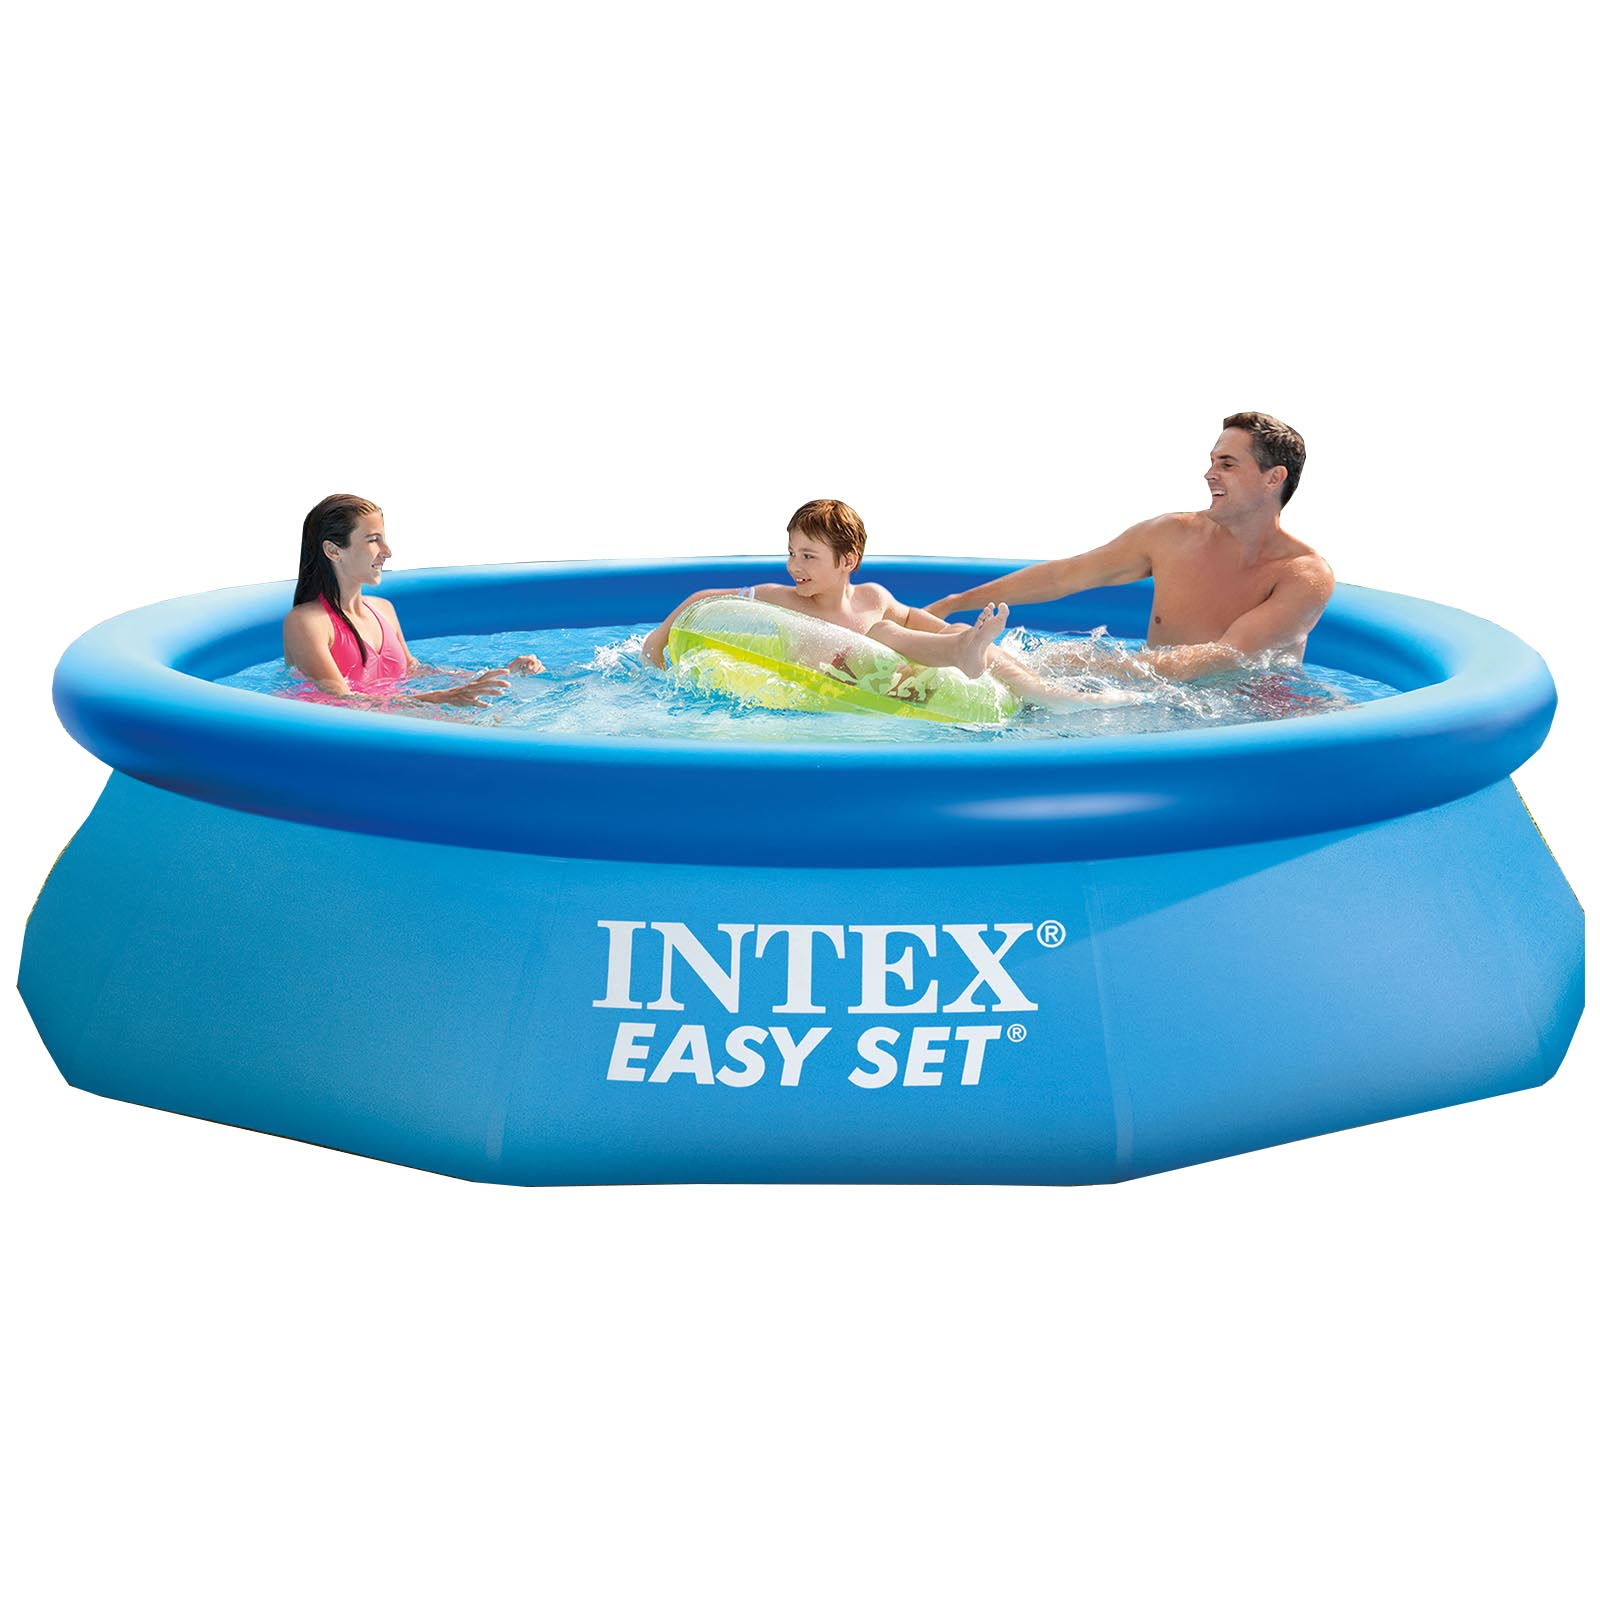 Intex 10 39 x 30 easy set above ground inflatable family for Above ground pools quick set